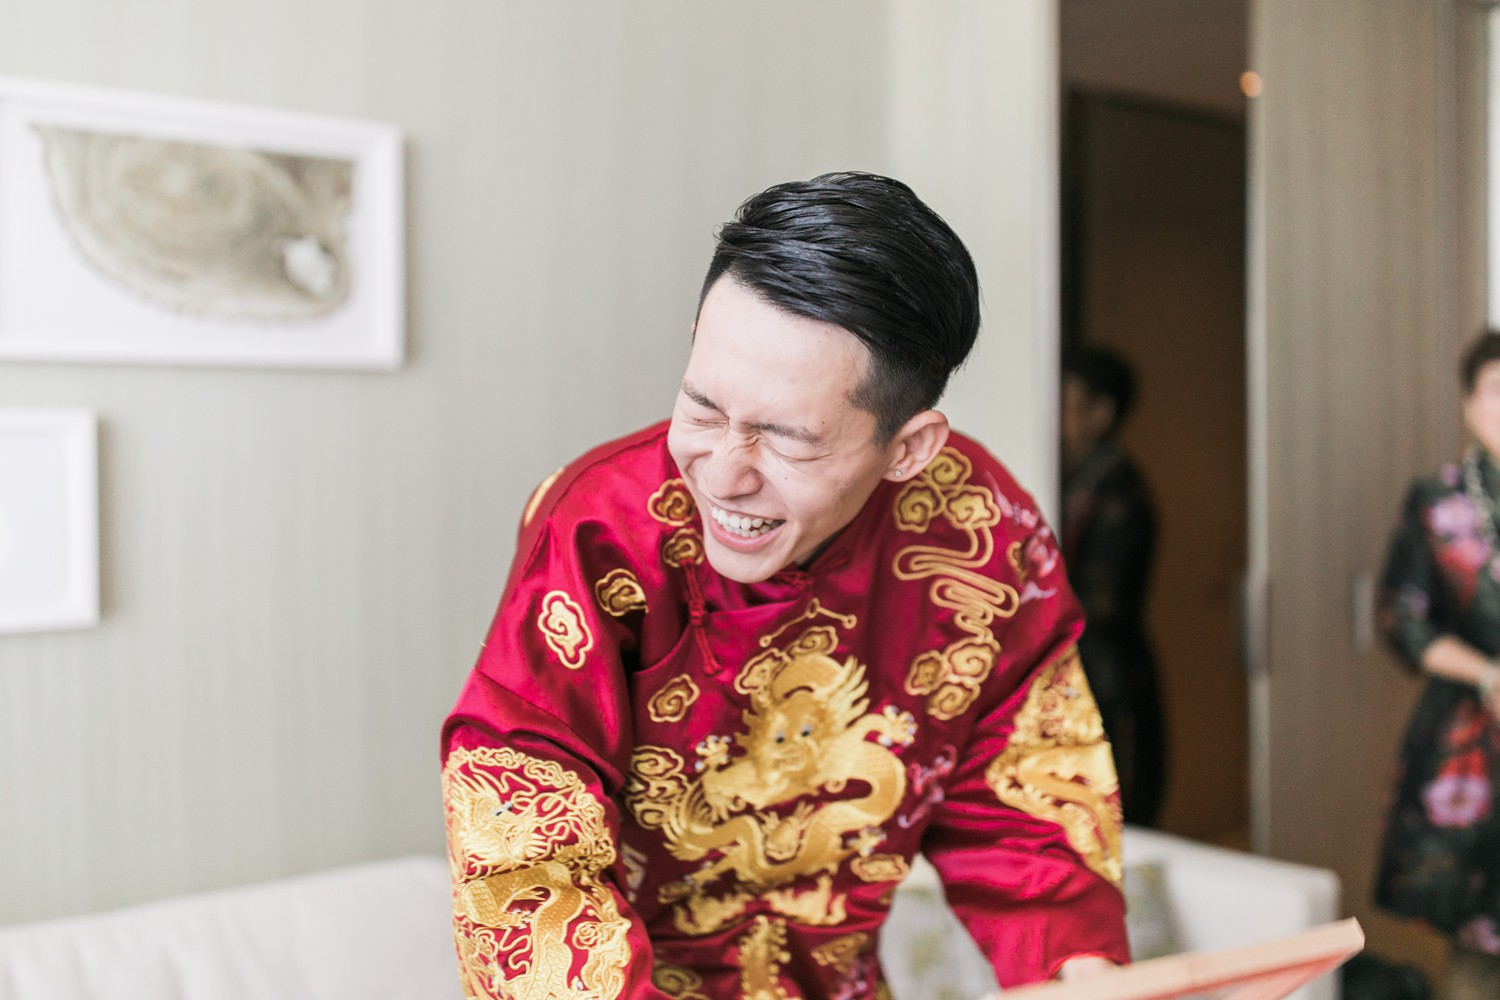 Chinese Door Games Luxury Yorkville Vinci Toronto Four Season Hotel Wedding Photos with Chinese Bride and Groom